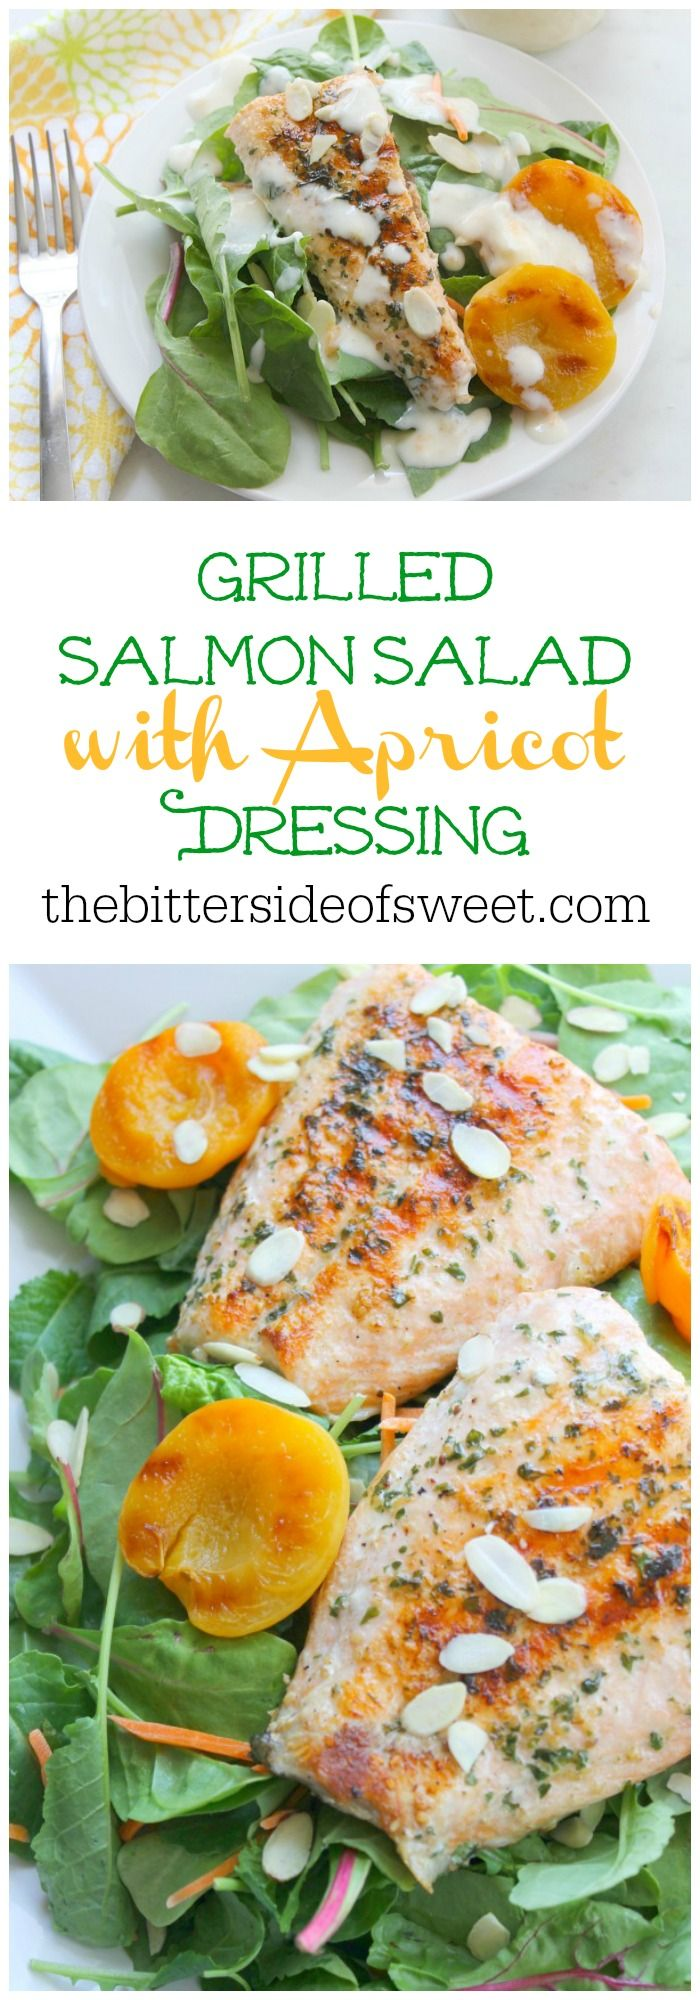 Grilled Salmon Salad with Apricot Dressing | The Bitter Side of Sweet